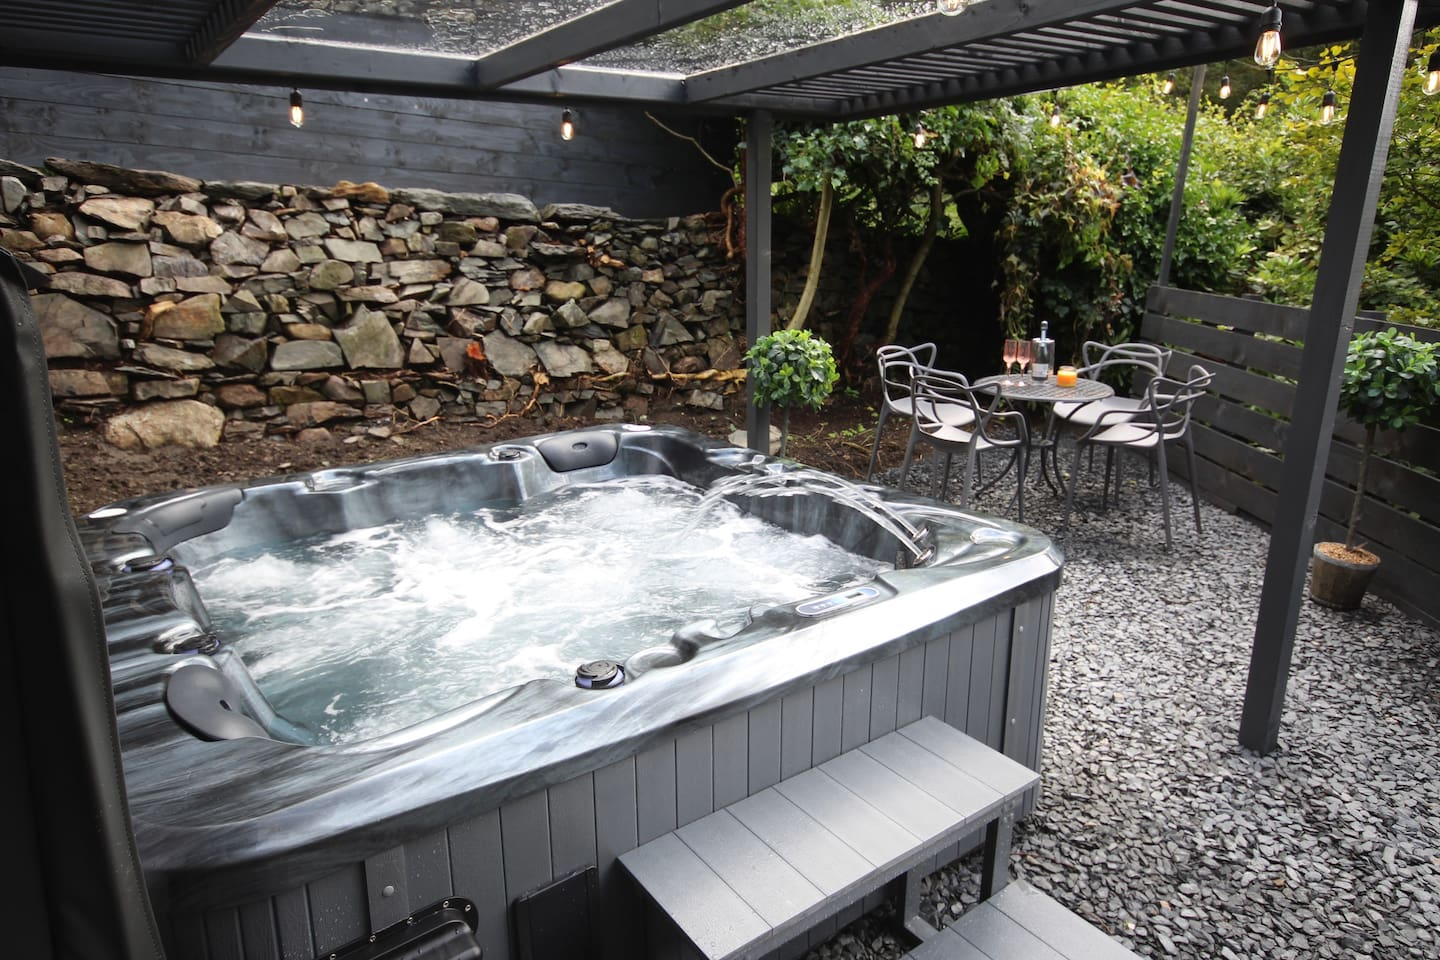 'New' Covered Hot Tub and seating area.